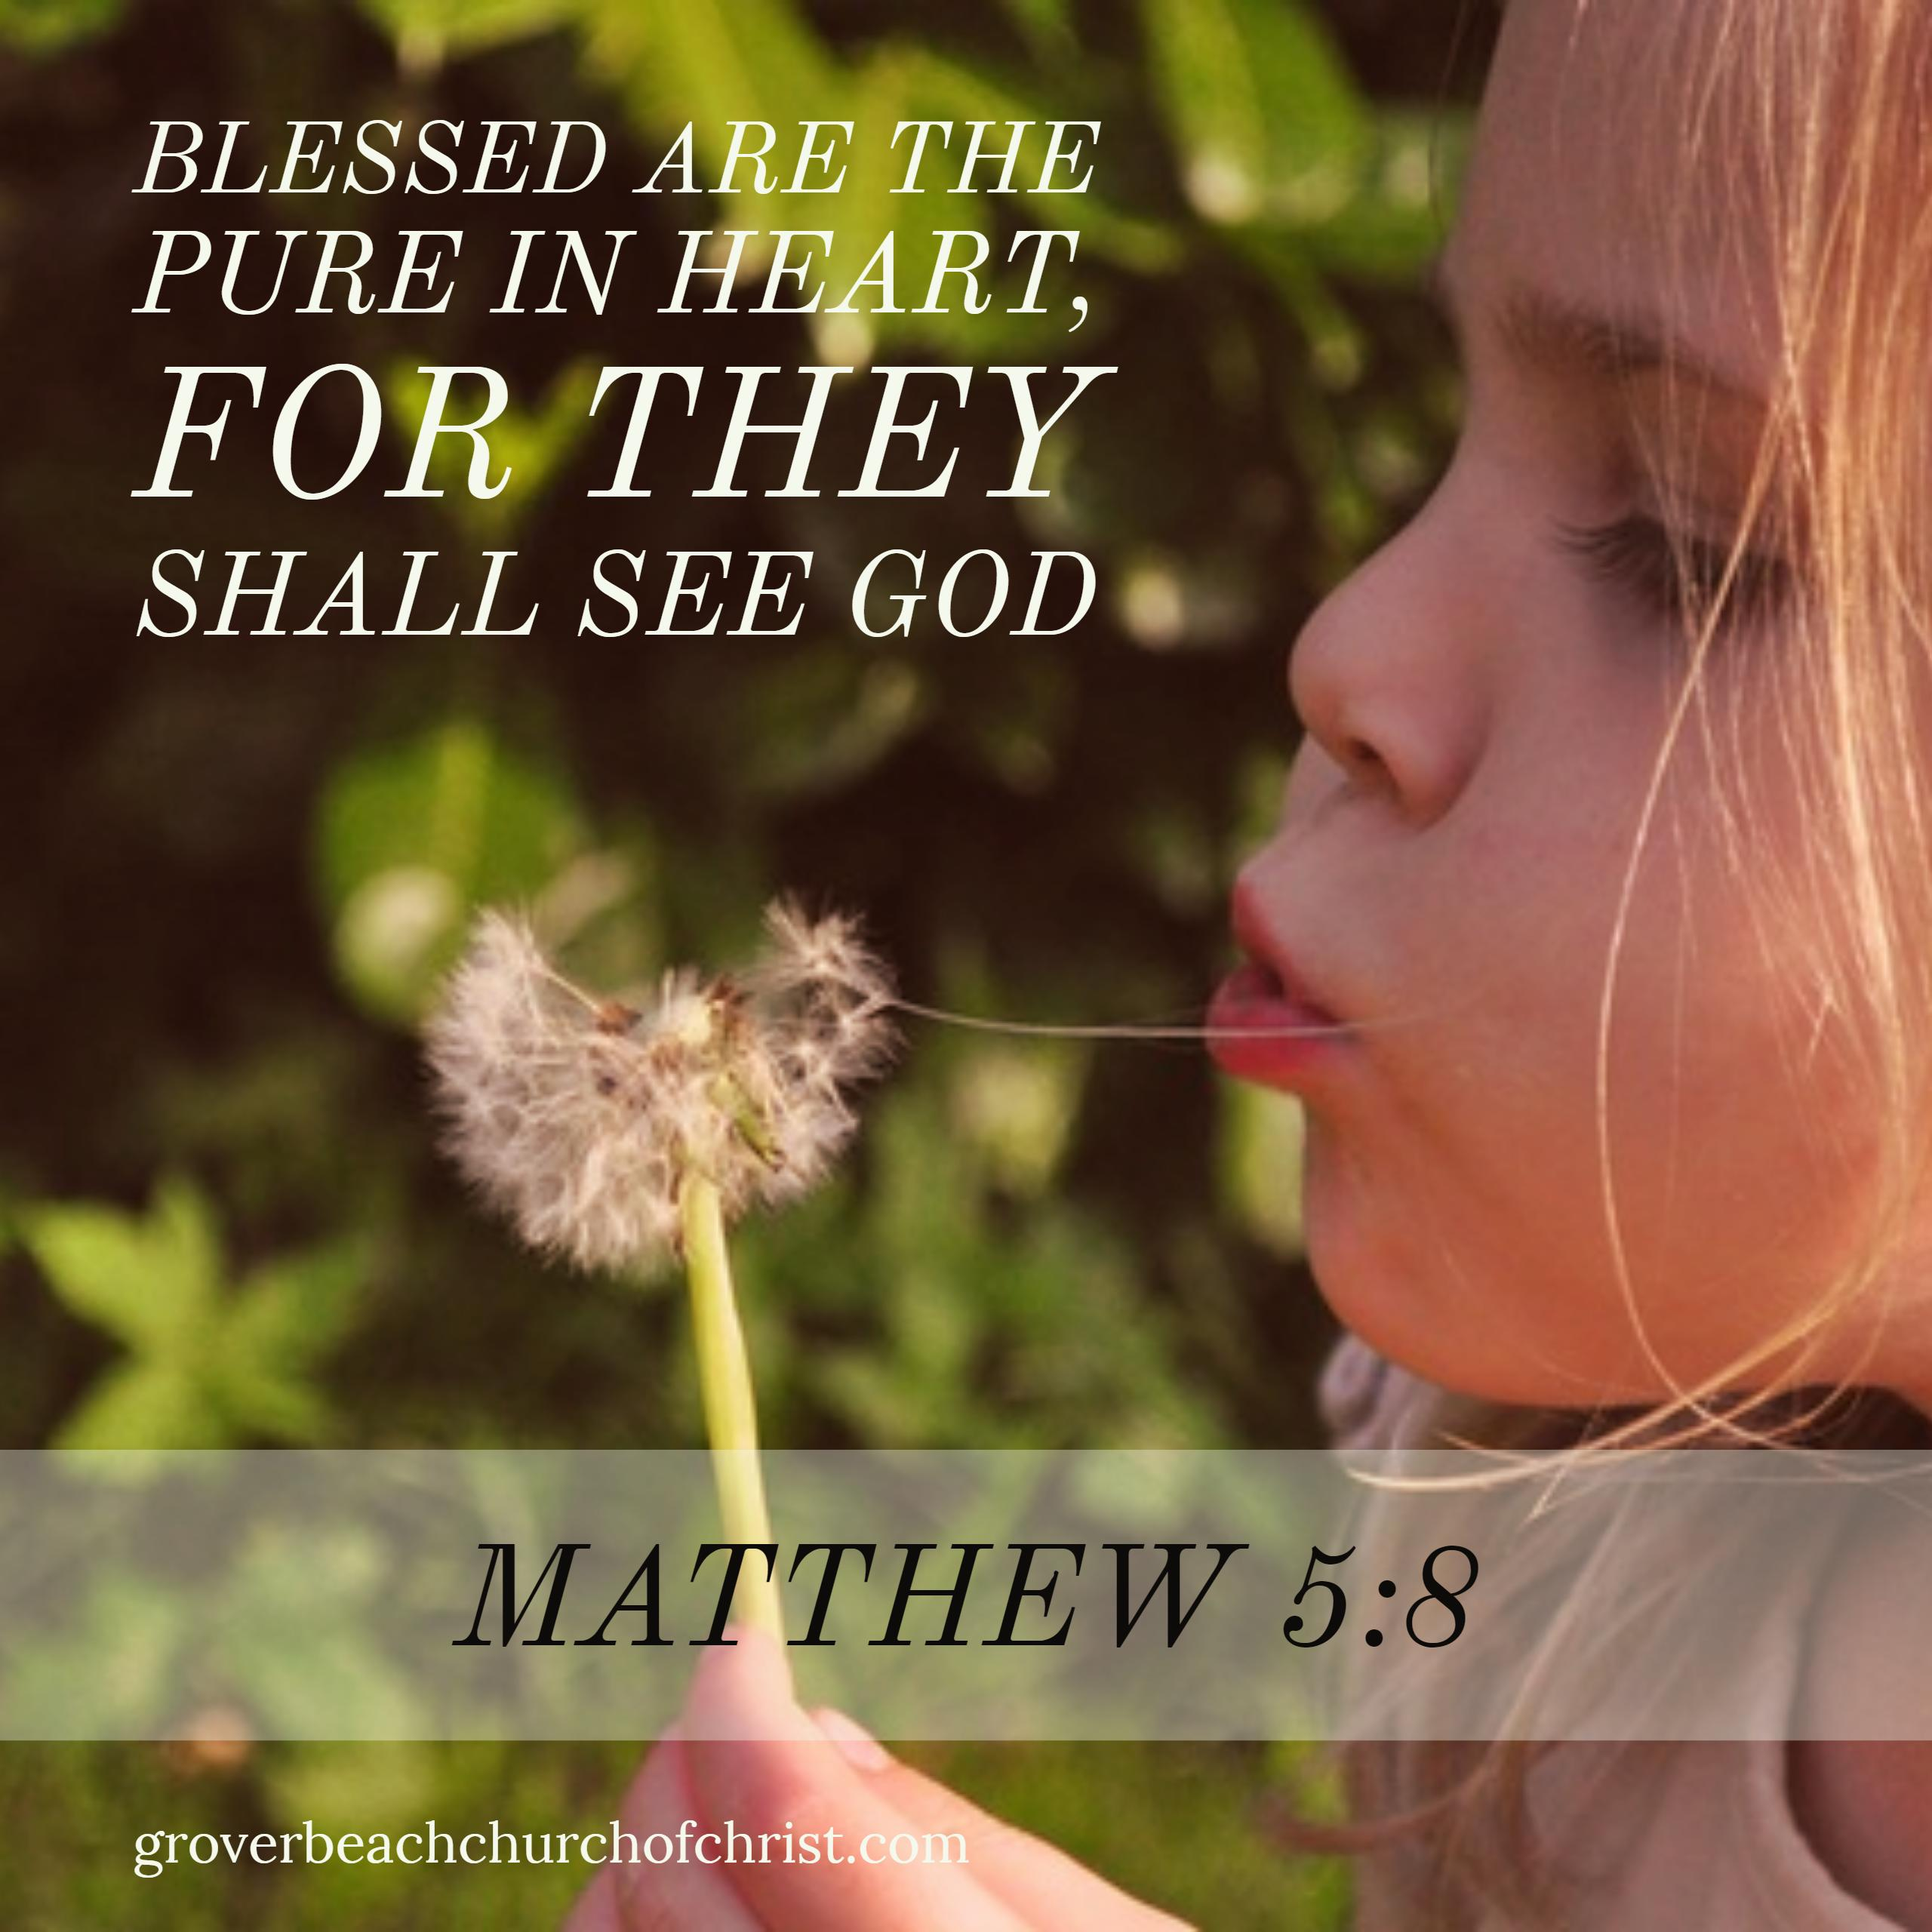 matthew-5:8-blessed-are-the-pure-in-heart